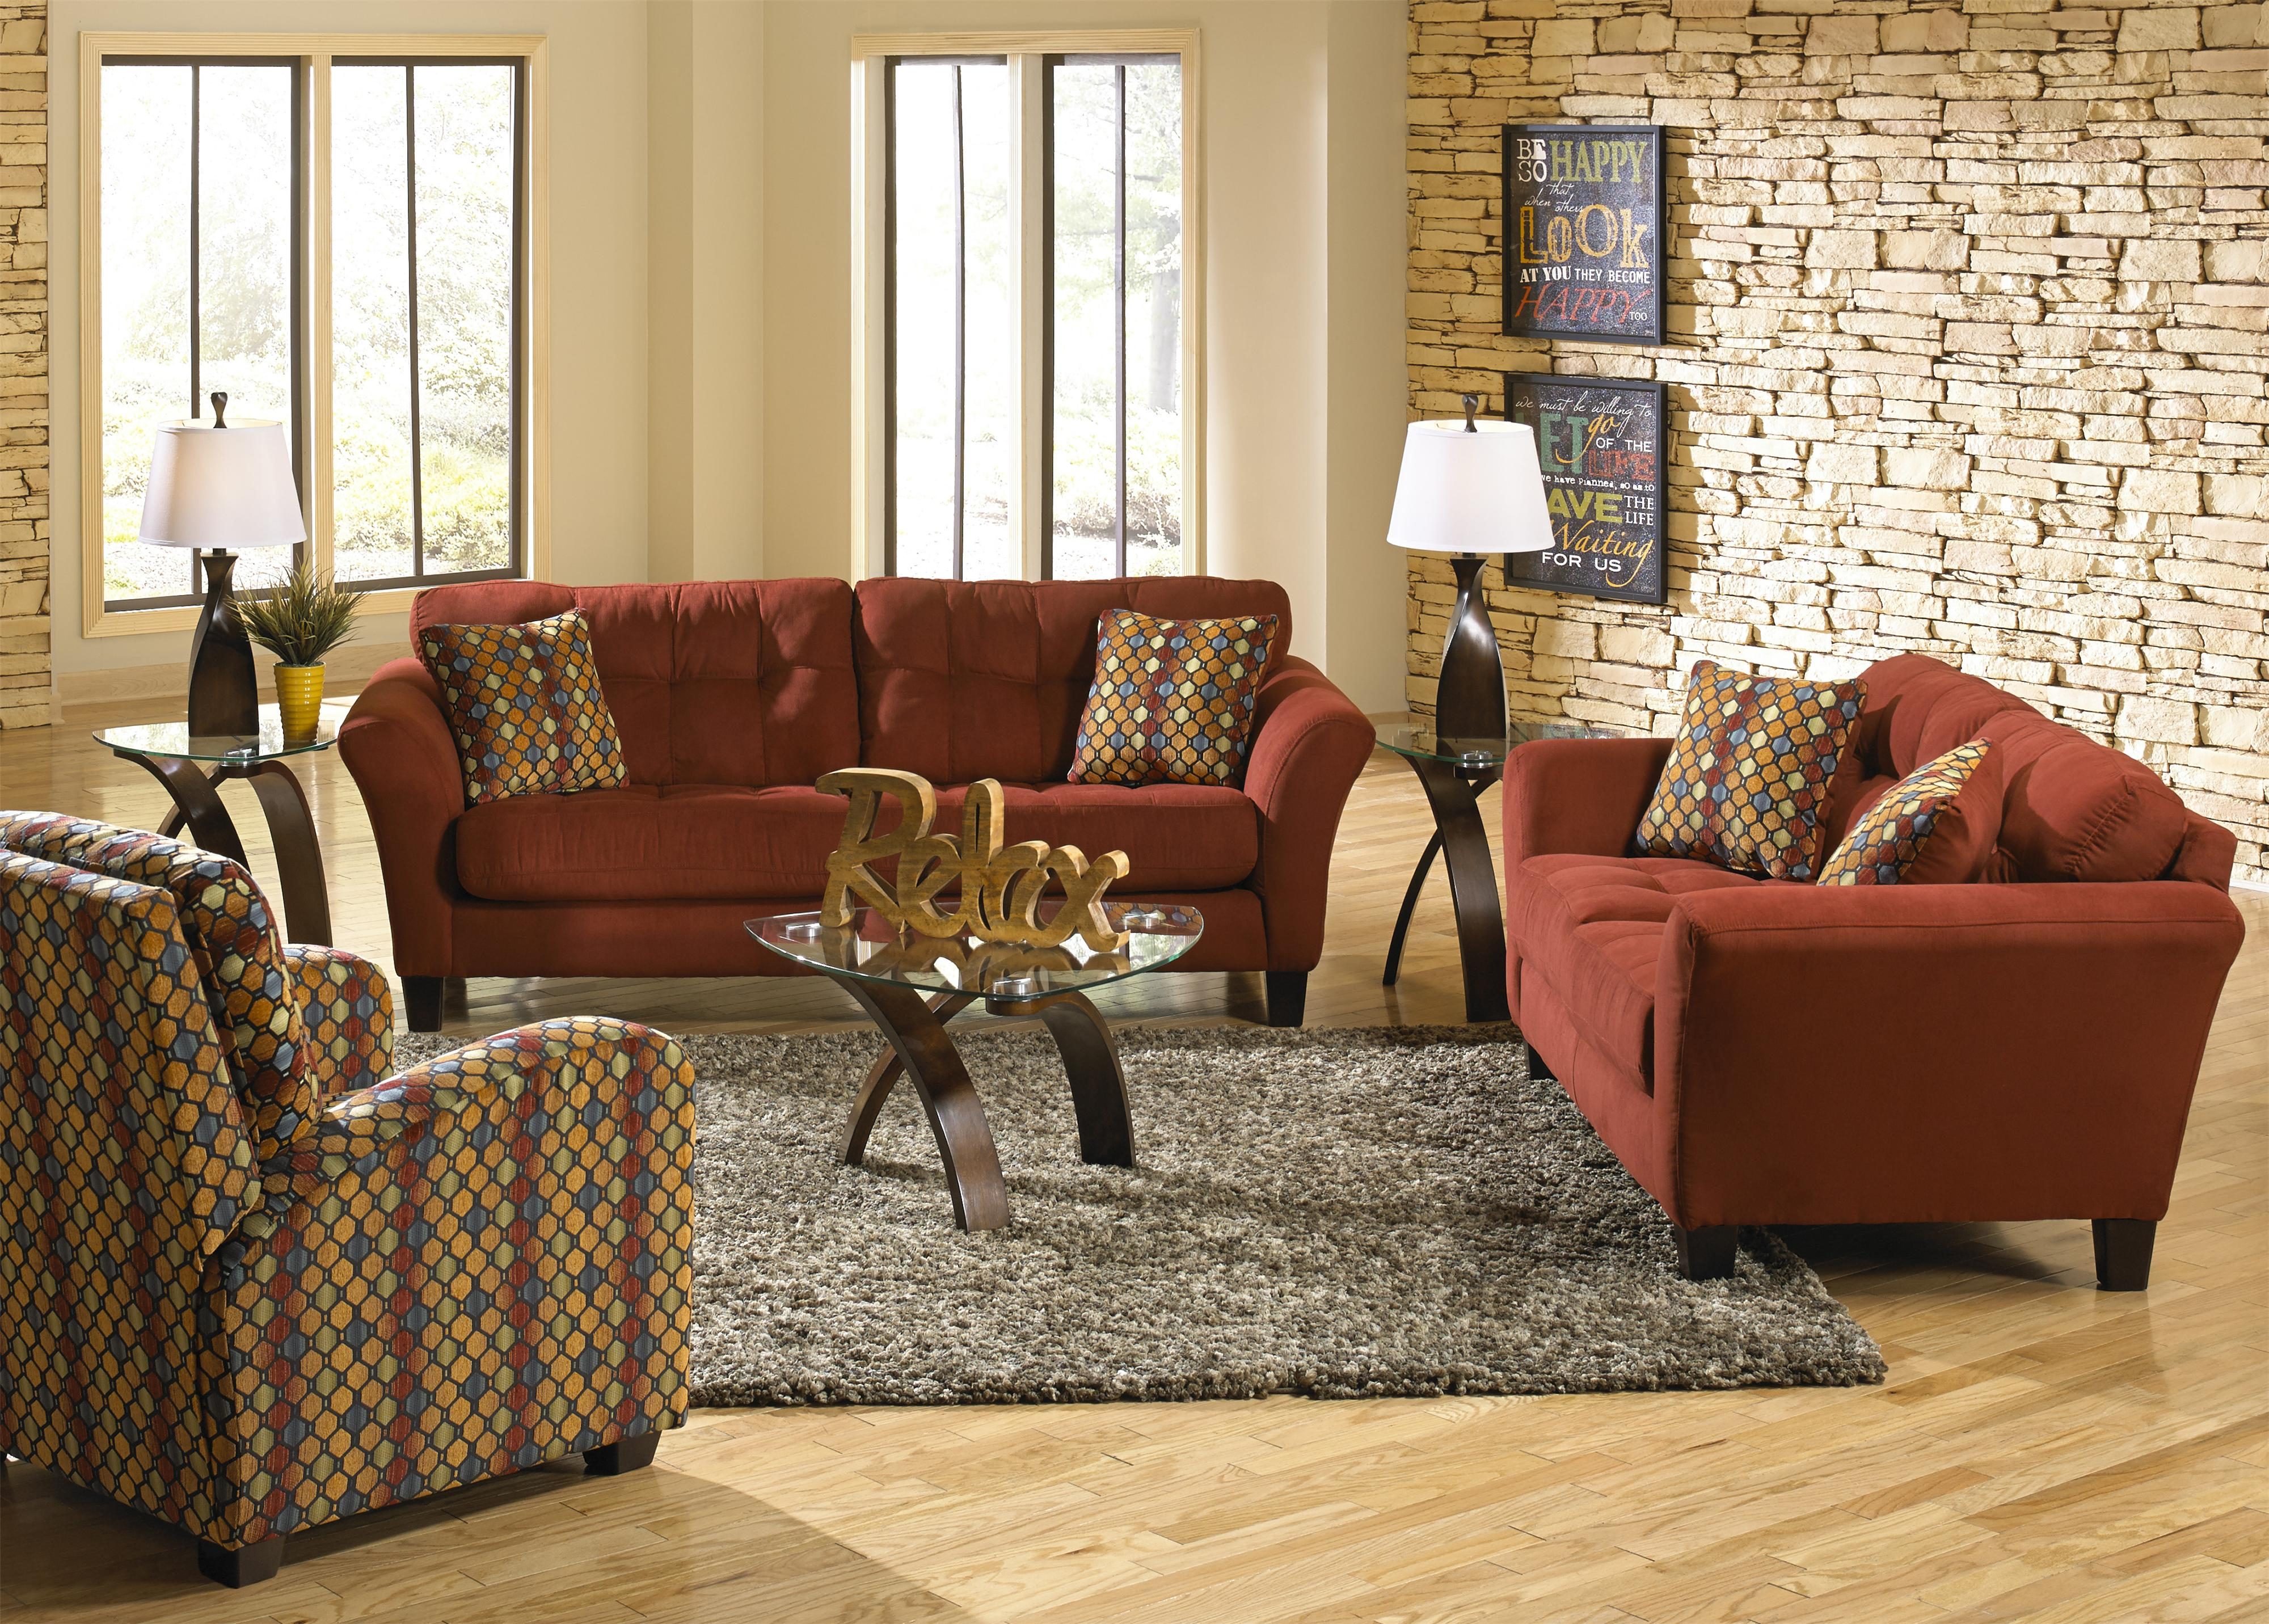 Sofa With 2 Seats And Tufted Back Cushions By Jackson Furniture Kylee Lagoon Living Room